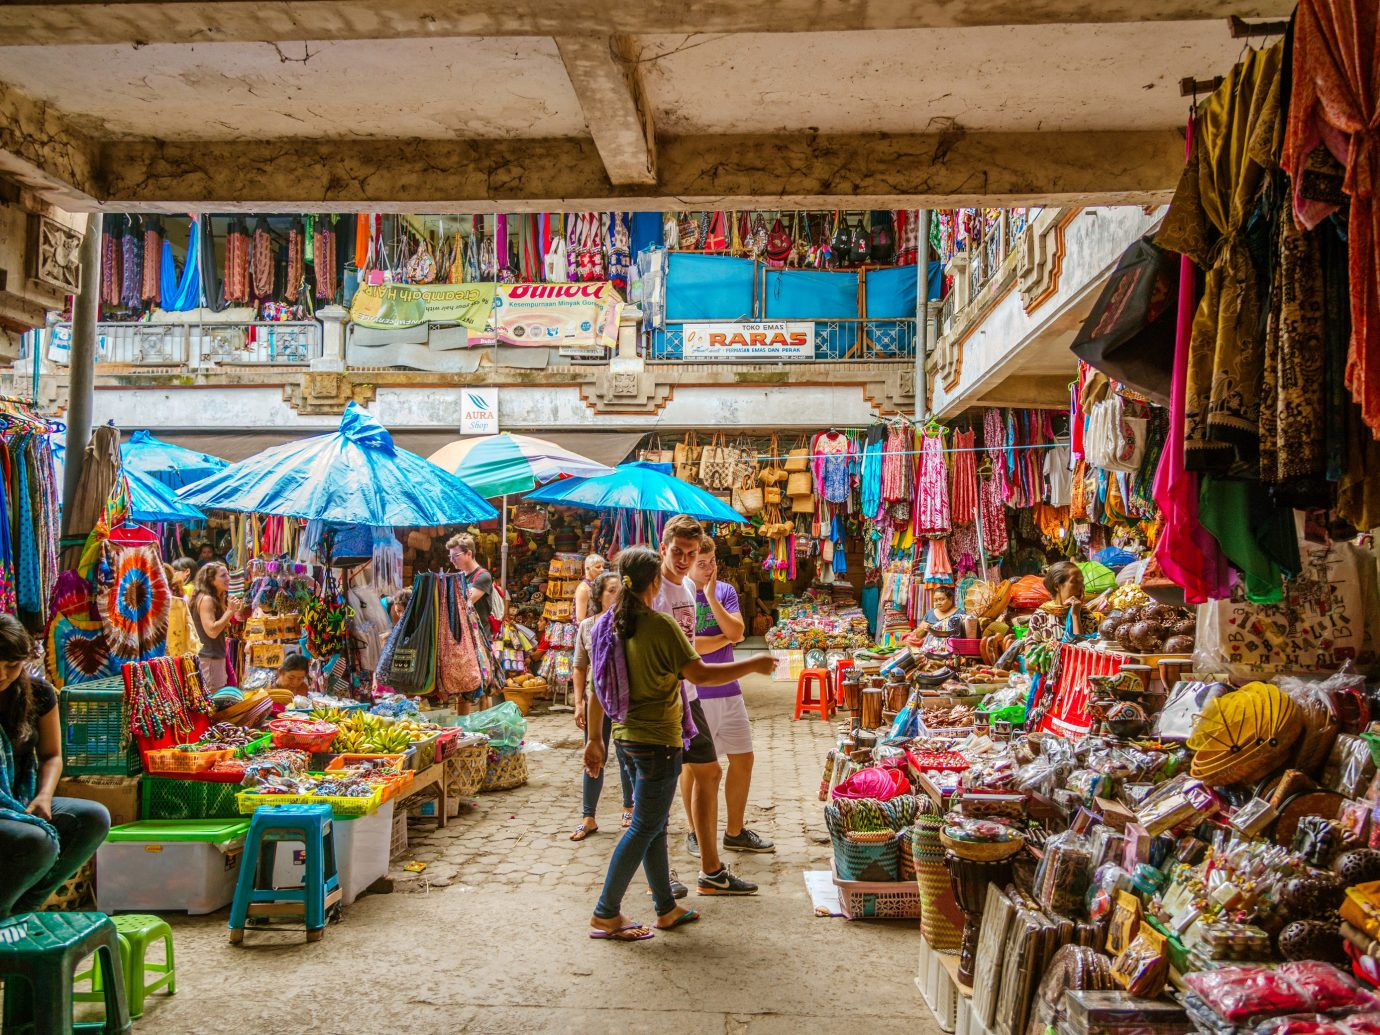 Hotels marketplace color market scene bazaar public space City fruit vendor human settlement produce retail store temple stall shopping fresh colorful sale Shop